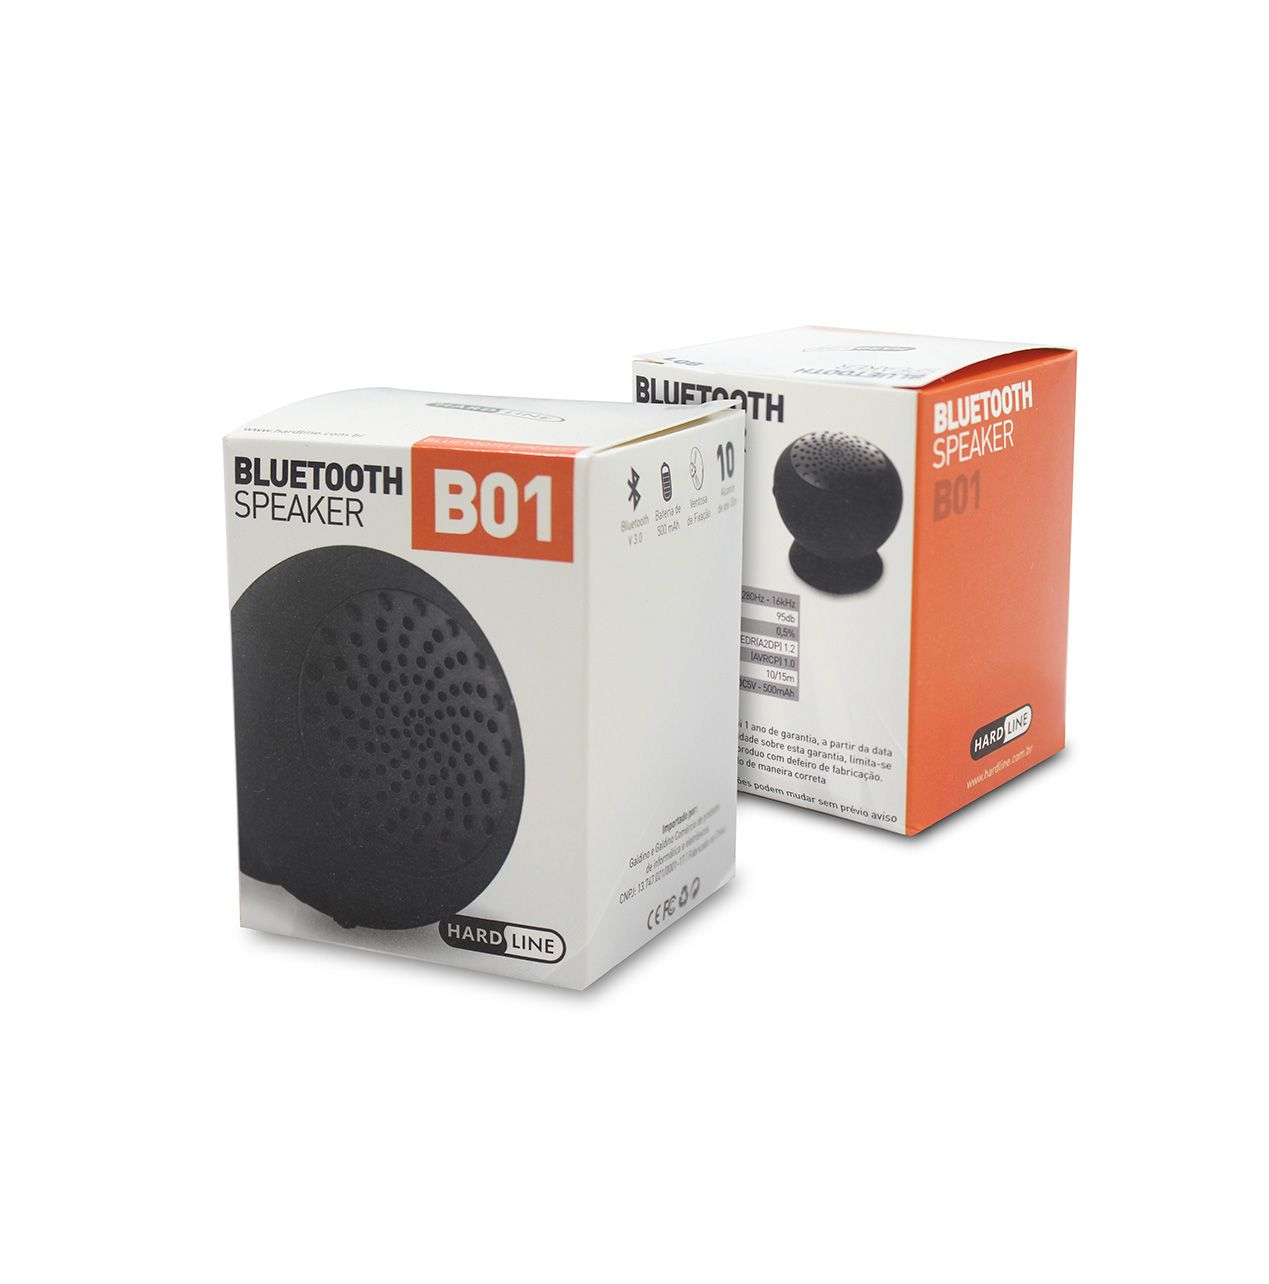 Mini Caixa de Som Speaker Bluetooth Portátil HardLine B01